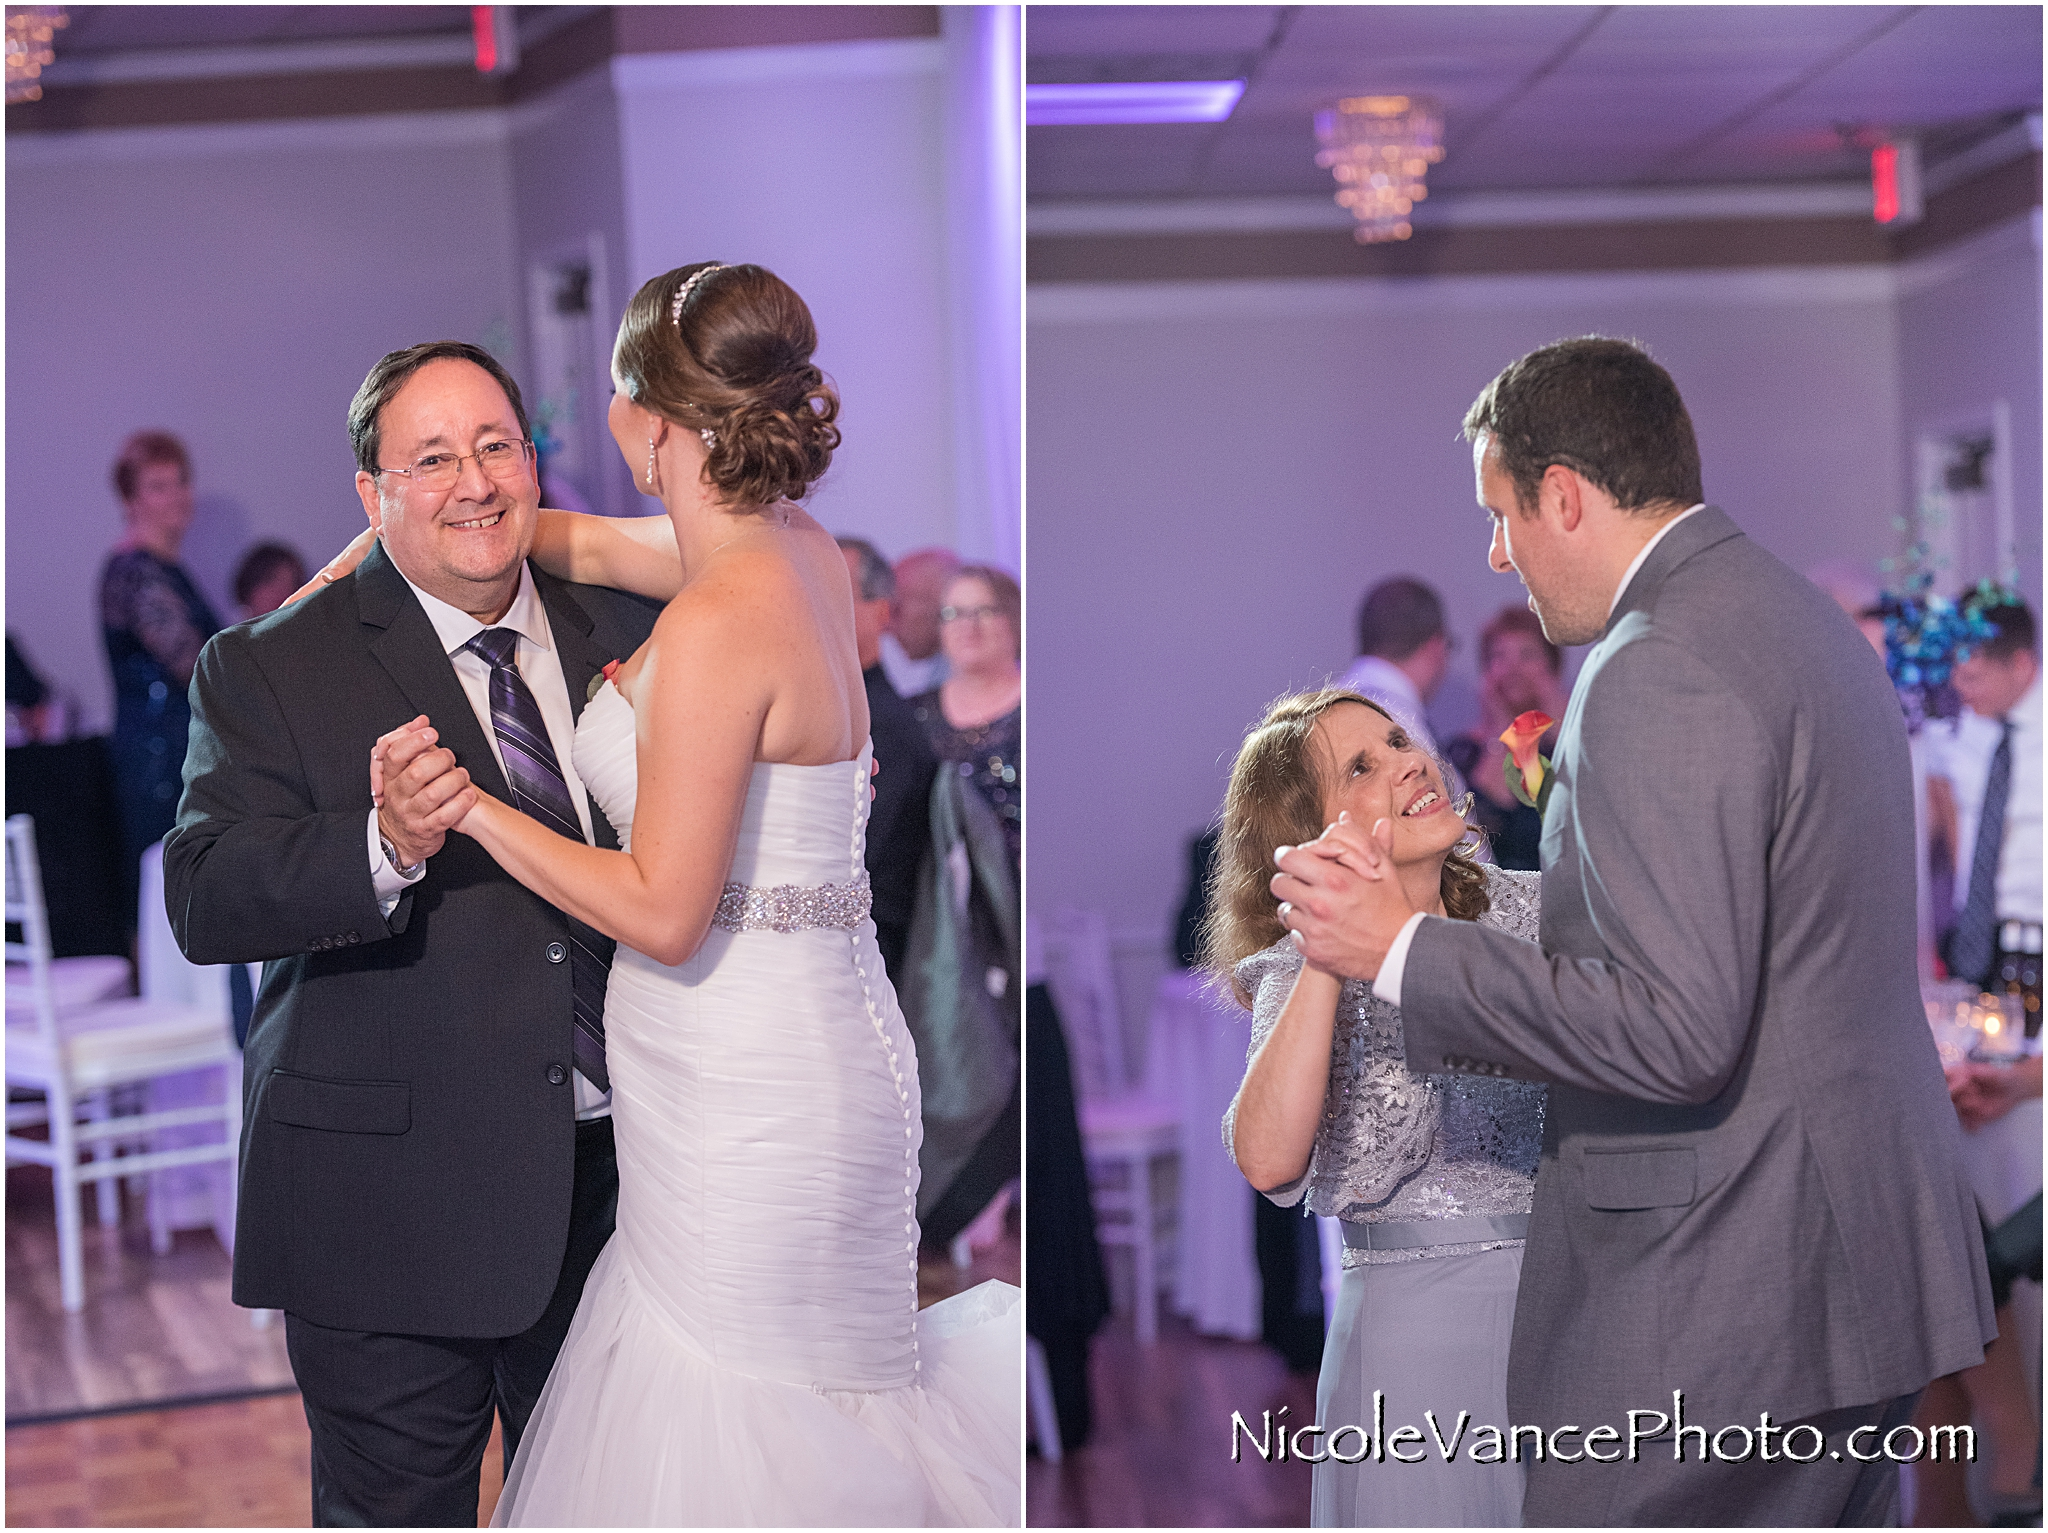 The father-daughter and the mother-son dance at the reception at The Brownstone.